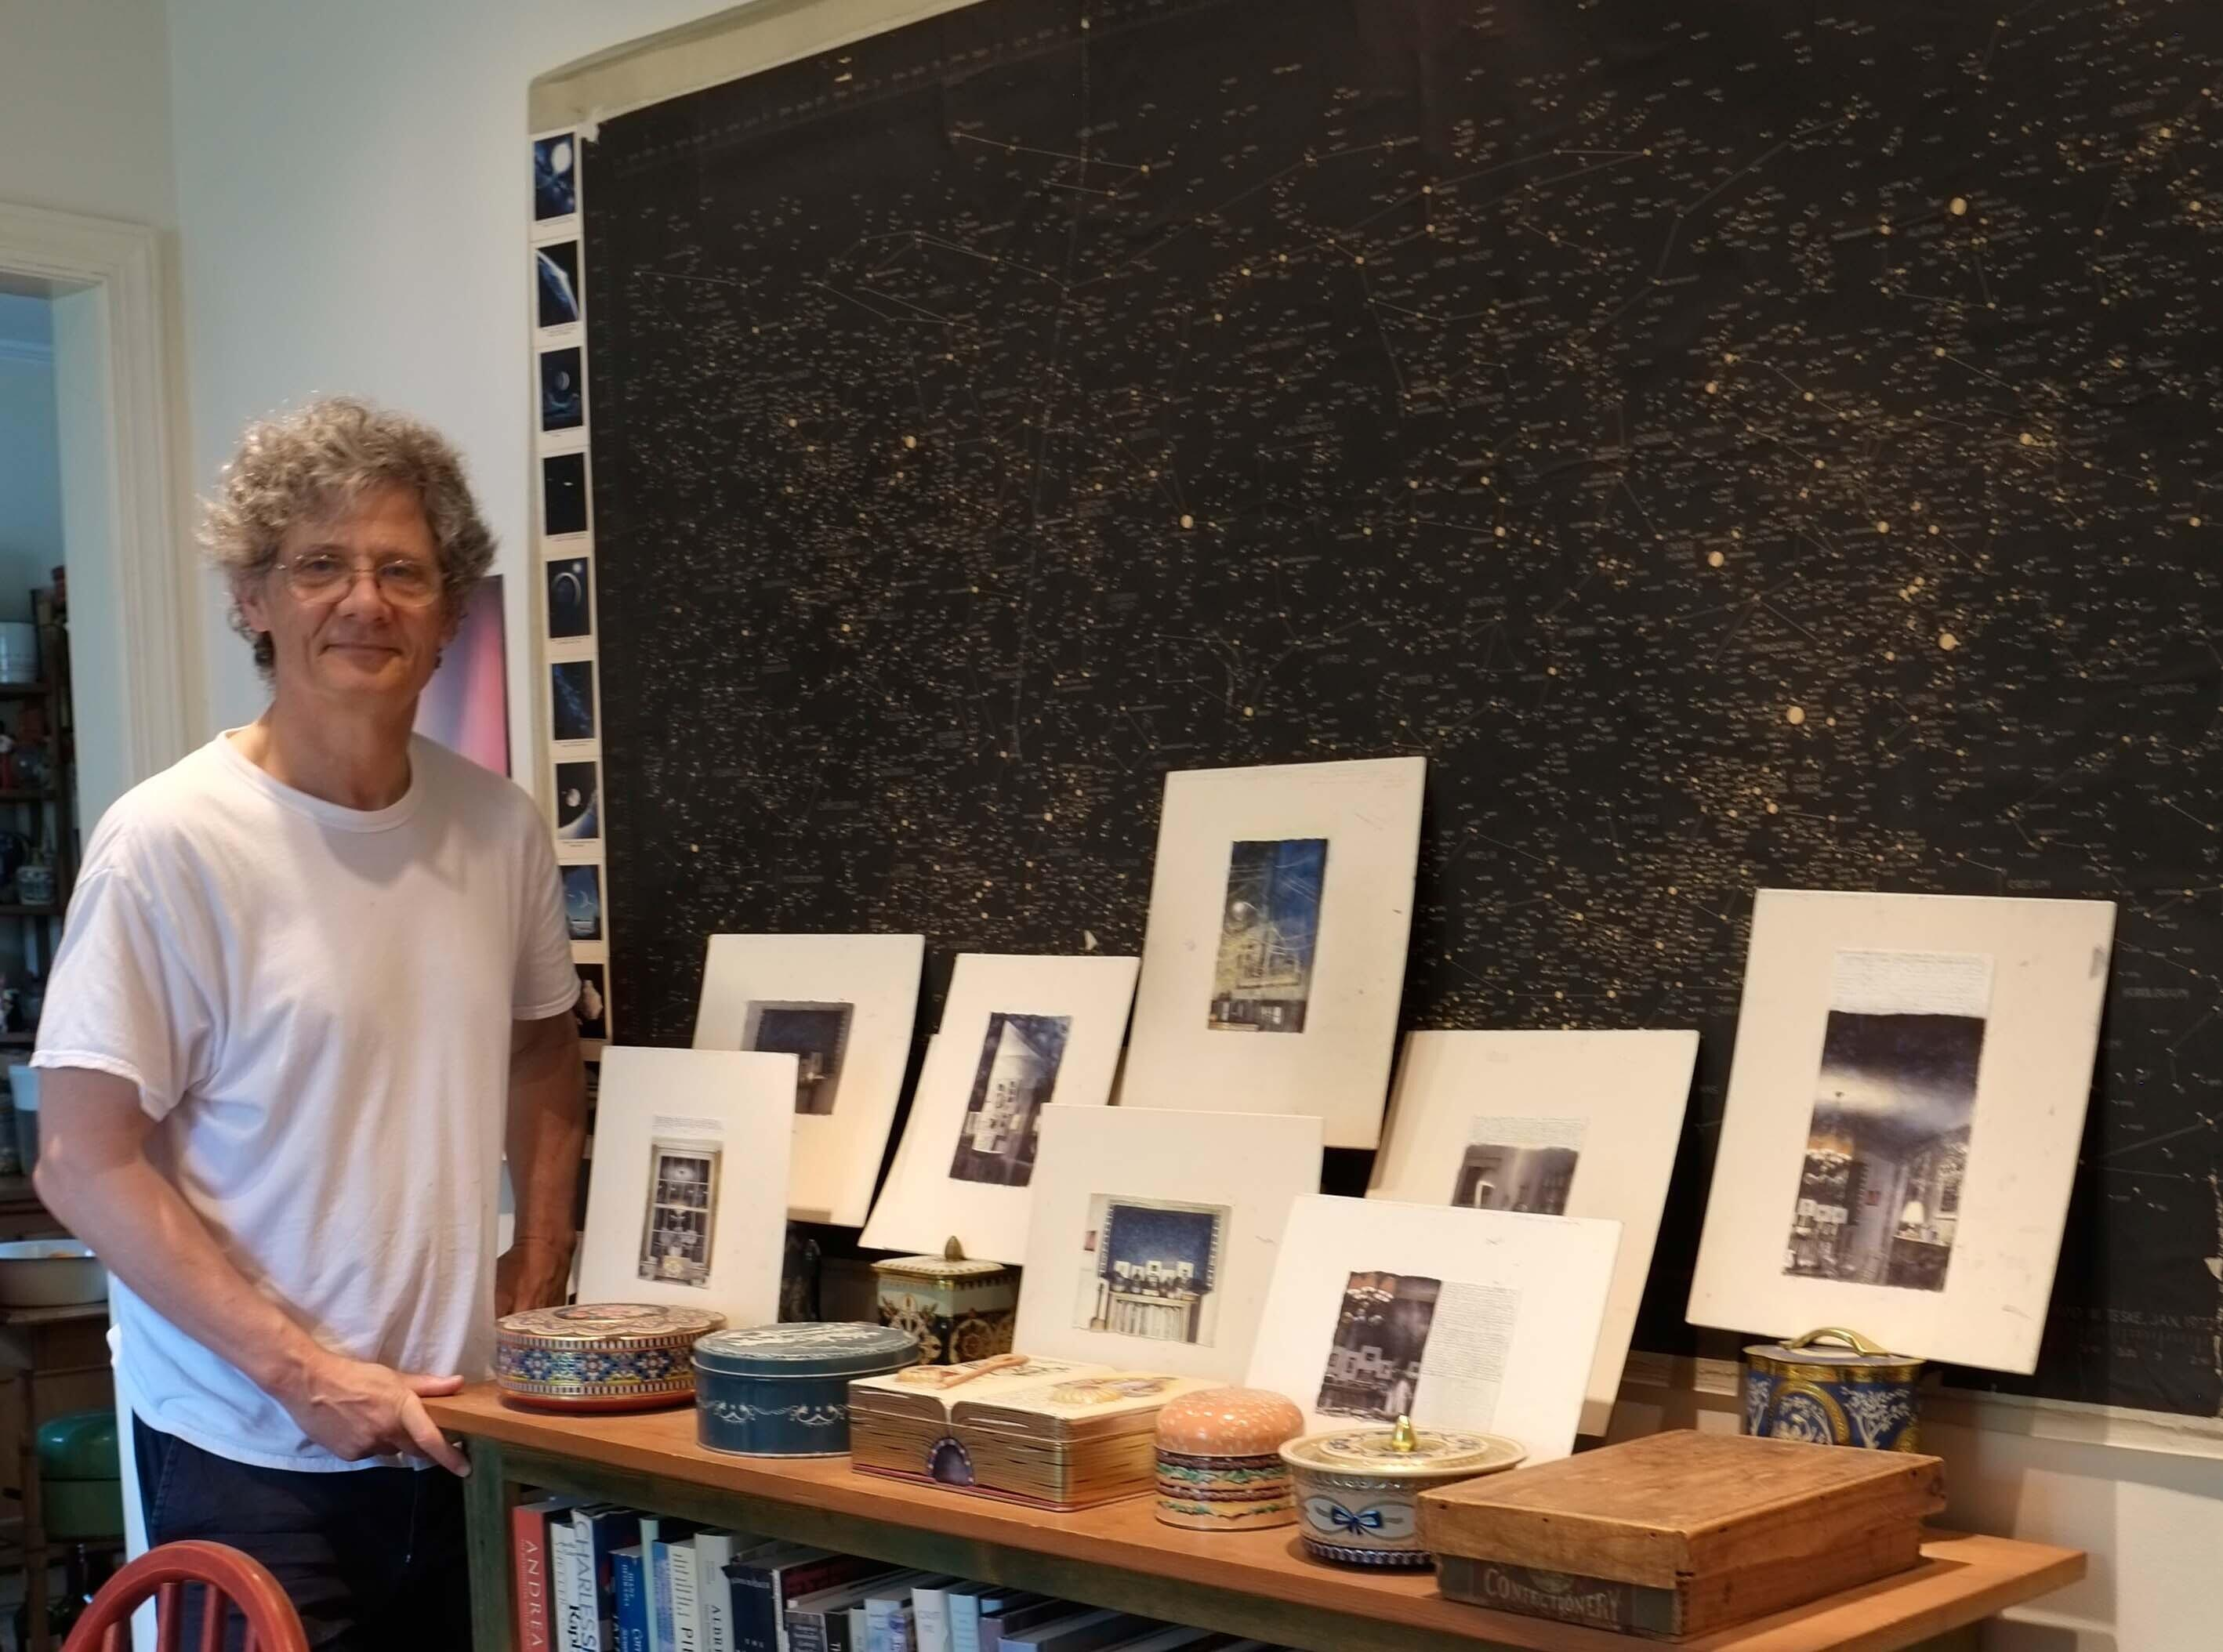 2017, Photograph of Charles Ritchie with Star Map and Drawings.  image